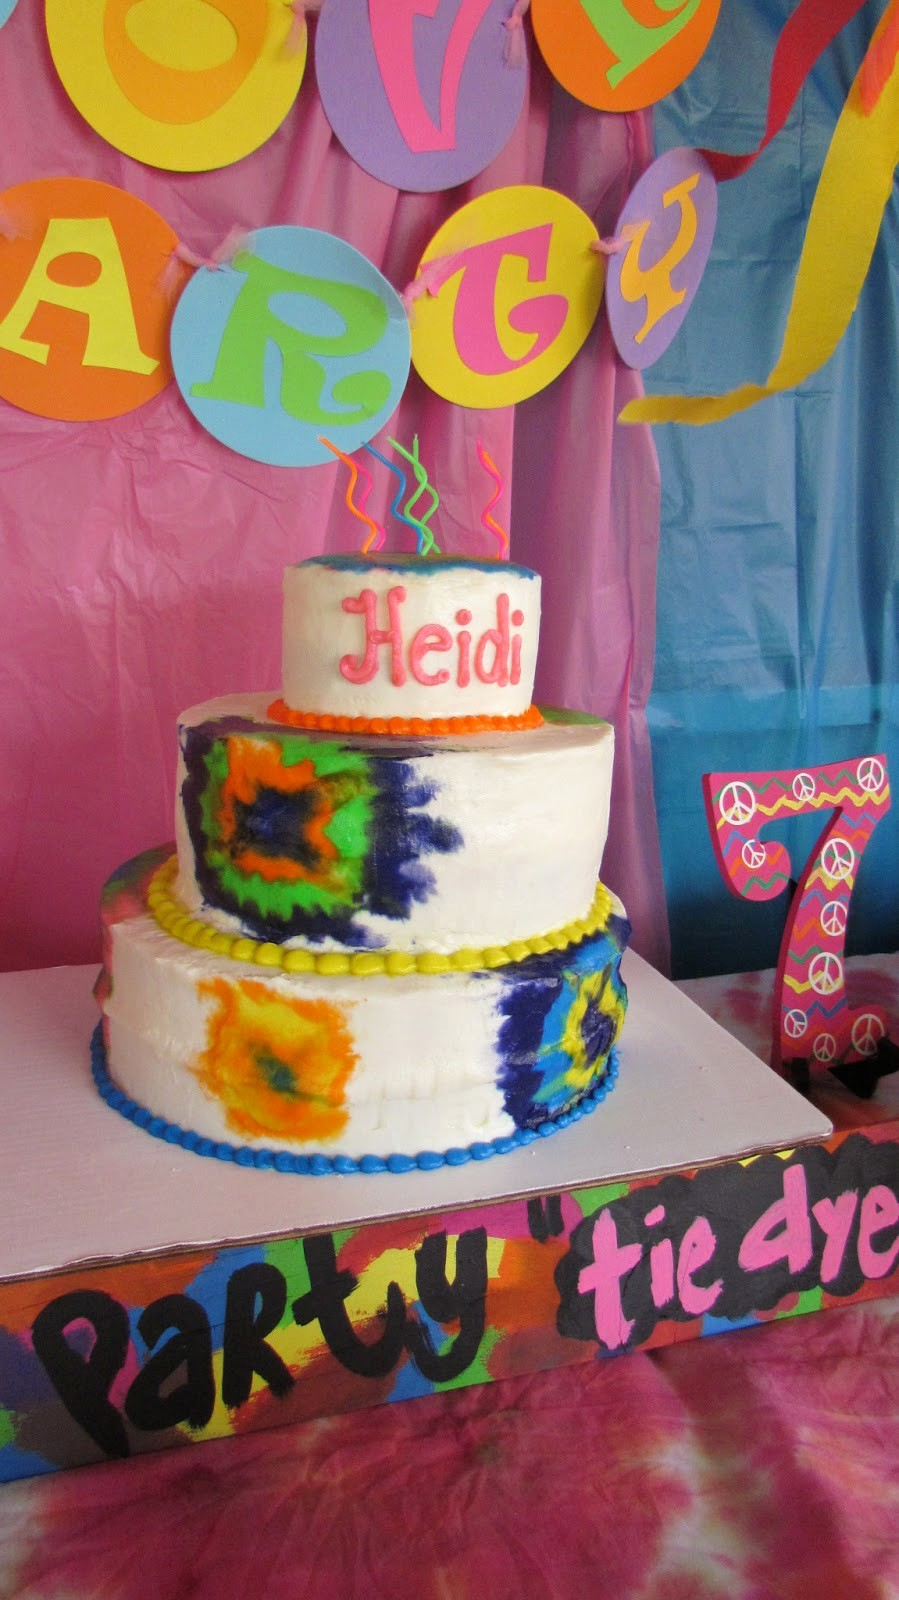 Tie Dye Happy Birthday Images Luxury the Colquett 5 Heidi S Tie Dye Party Happy 7th Birthday